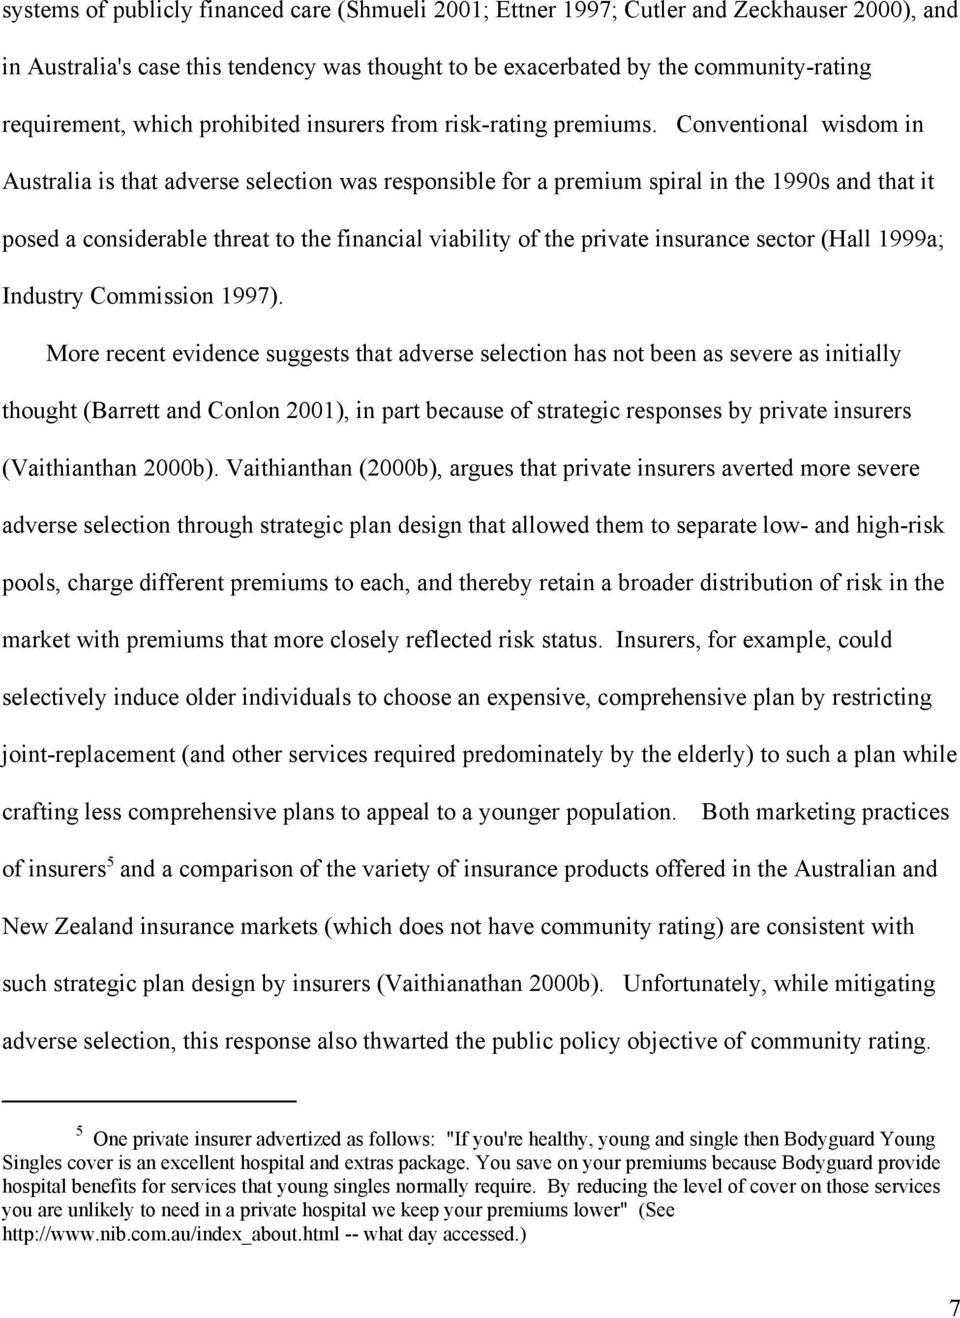 Conventional wisdom in Australia is that adverse selection was responsible for a premium spiral in the 1990s and that it posed a considerable threat to the financial viability of the private